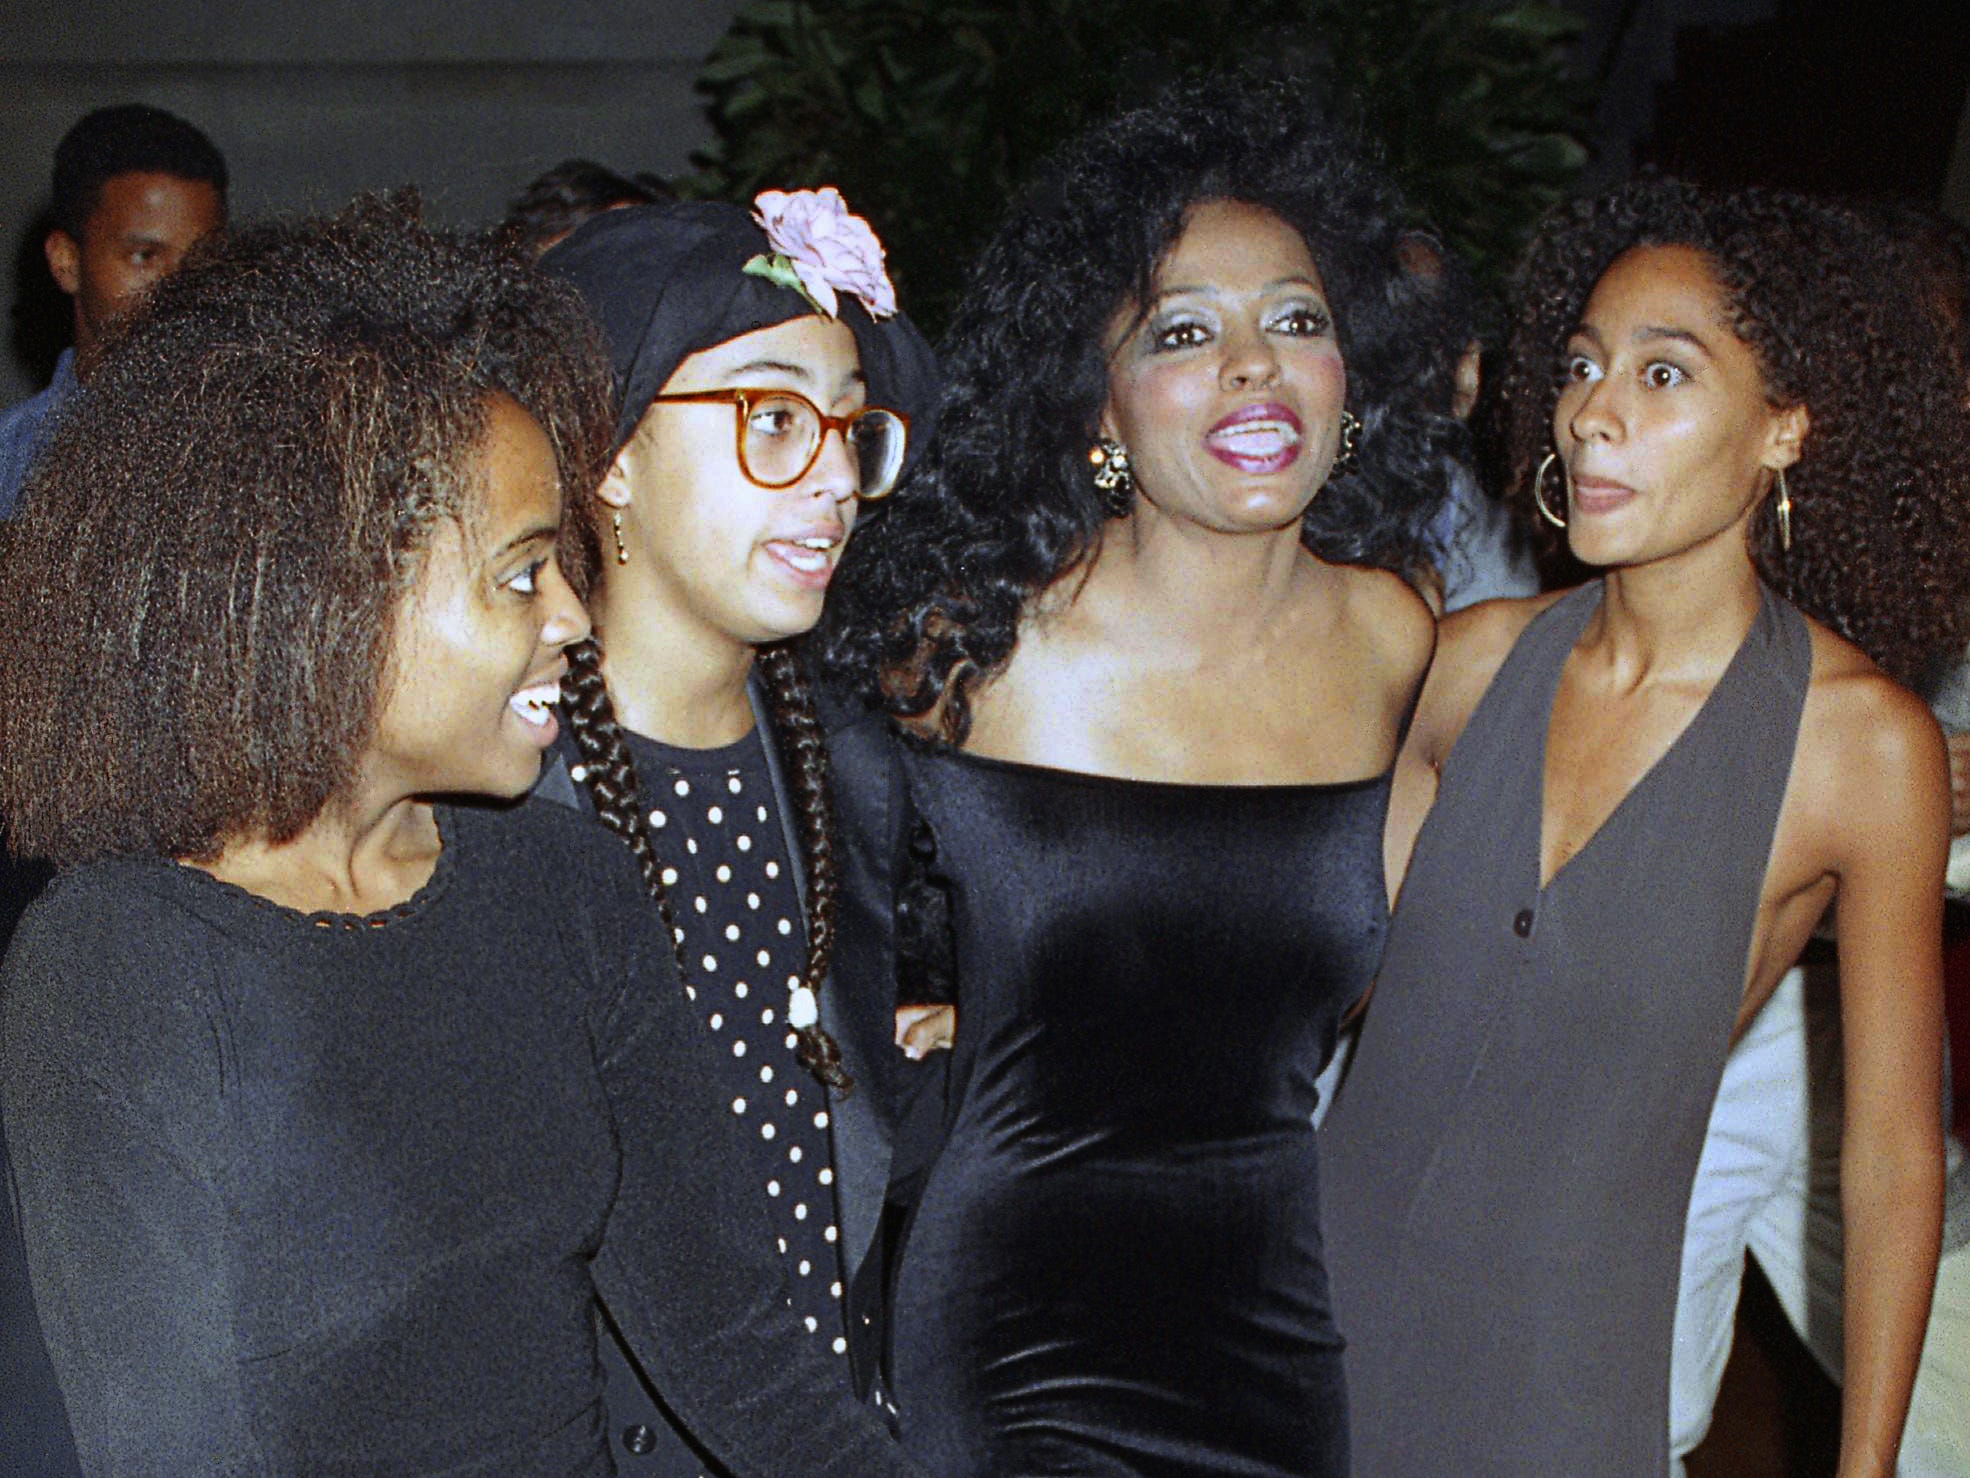 Diana Ross is joined by daughters, from left, Rhonda, Chudney and Tracee at a party following her opening night performance at New York's Radio City Music Hall on Sept. 20, 1991.  Her concert songlists at that time delivered a mix of ballads, pop, blues, jazz and disco.